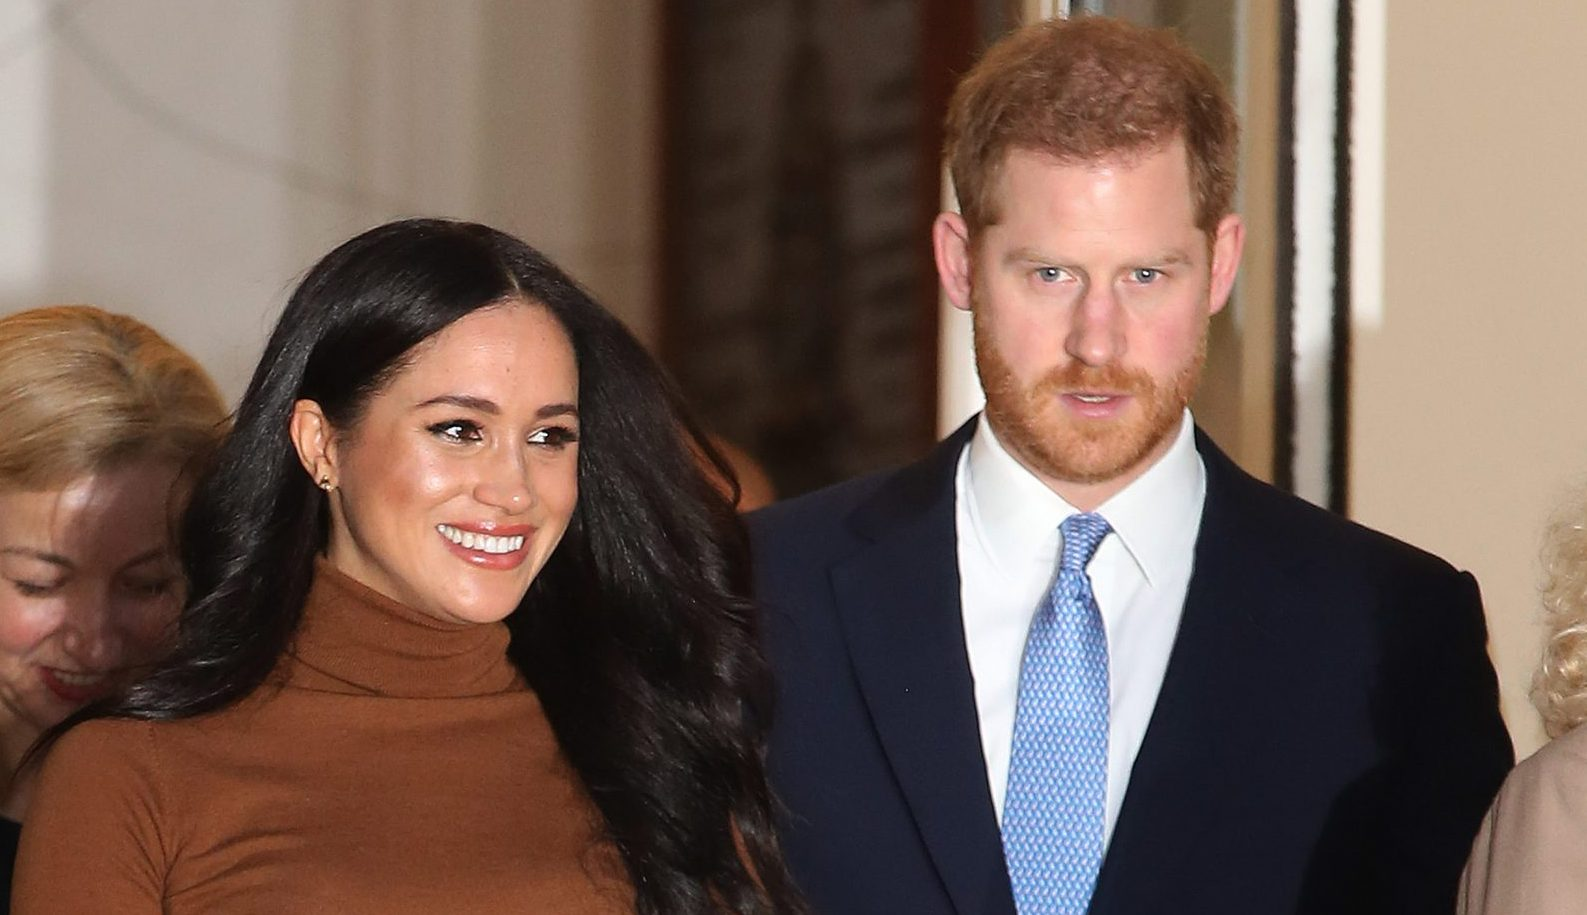 Duke and Duchess of Sussex named among 'most boring' conversation topics